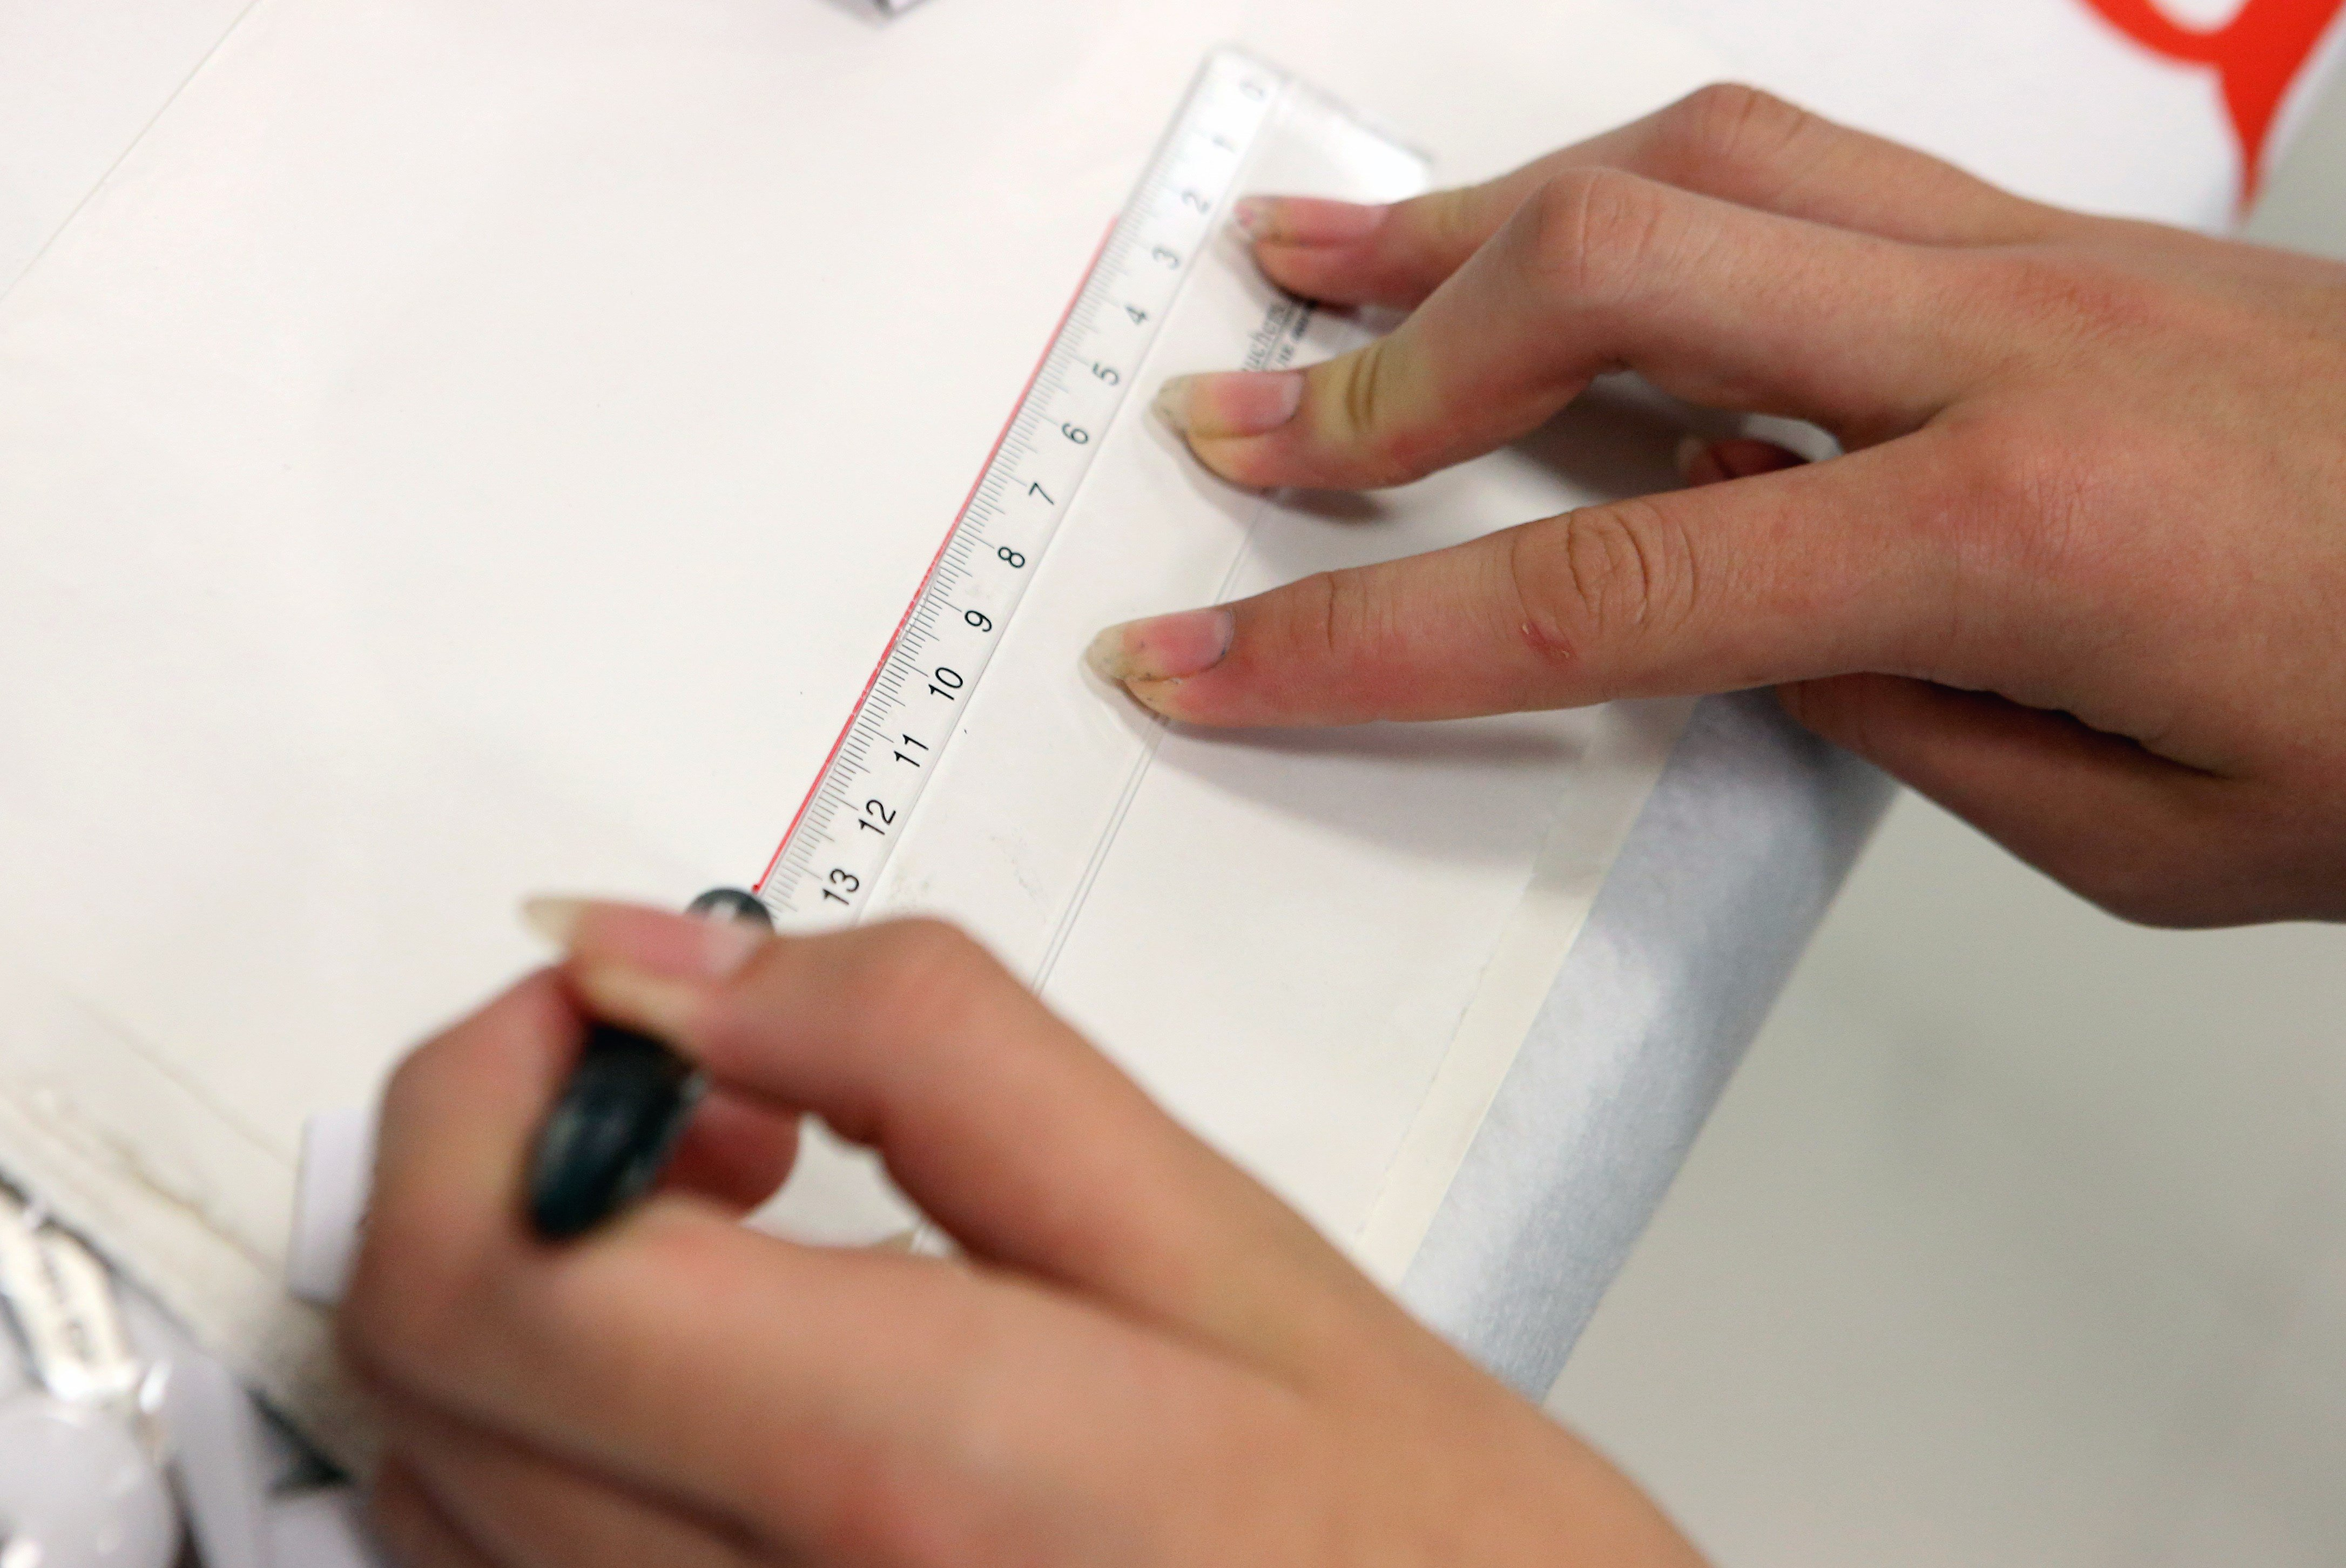 A person uses a special ruler for lefties at work